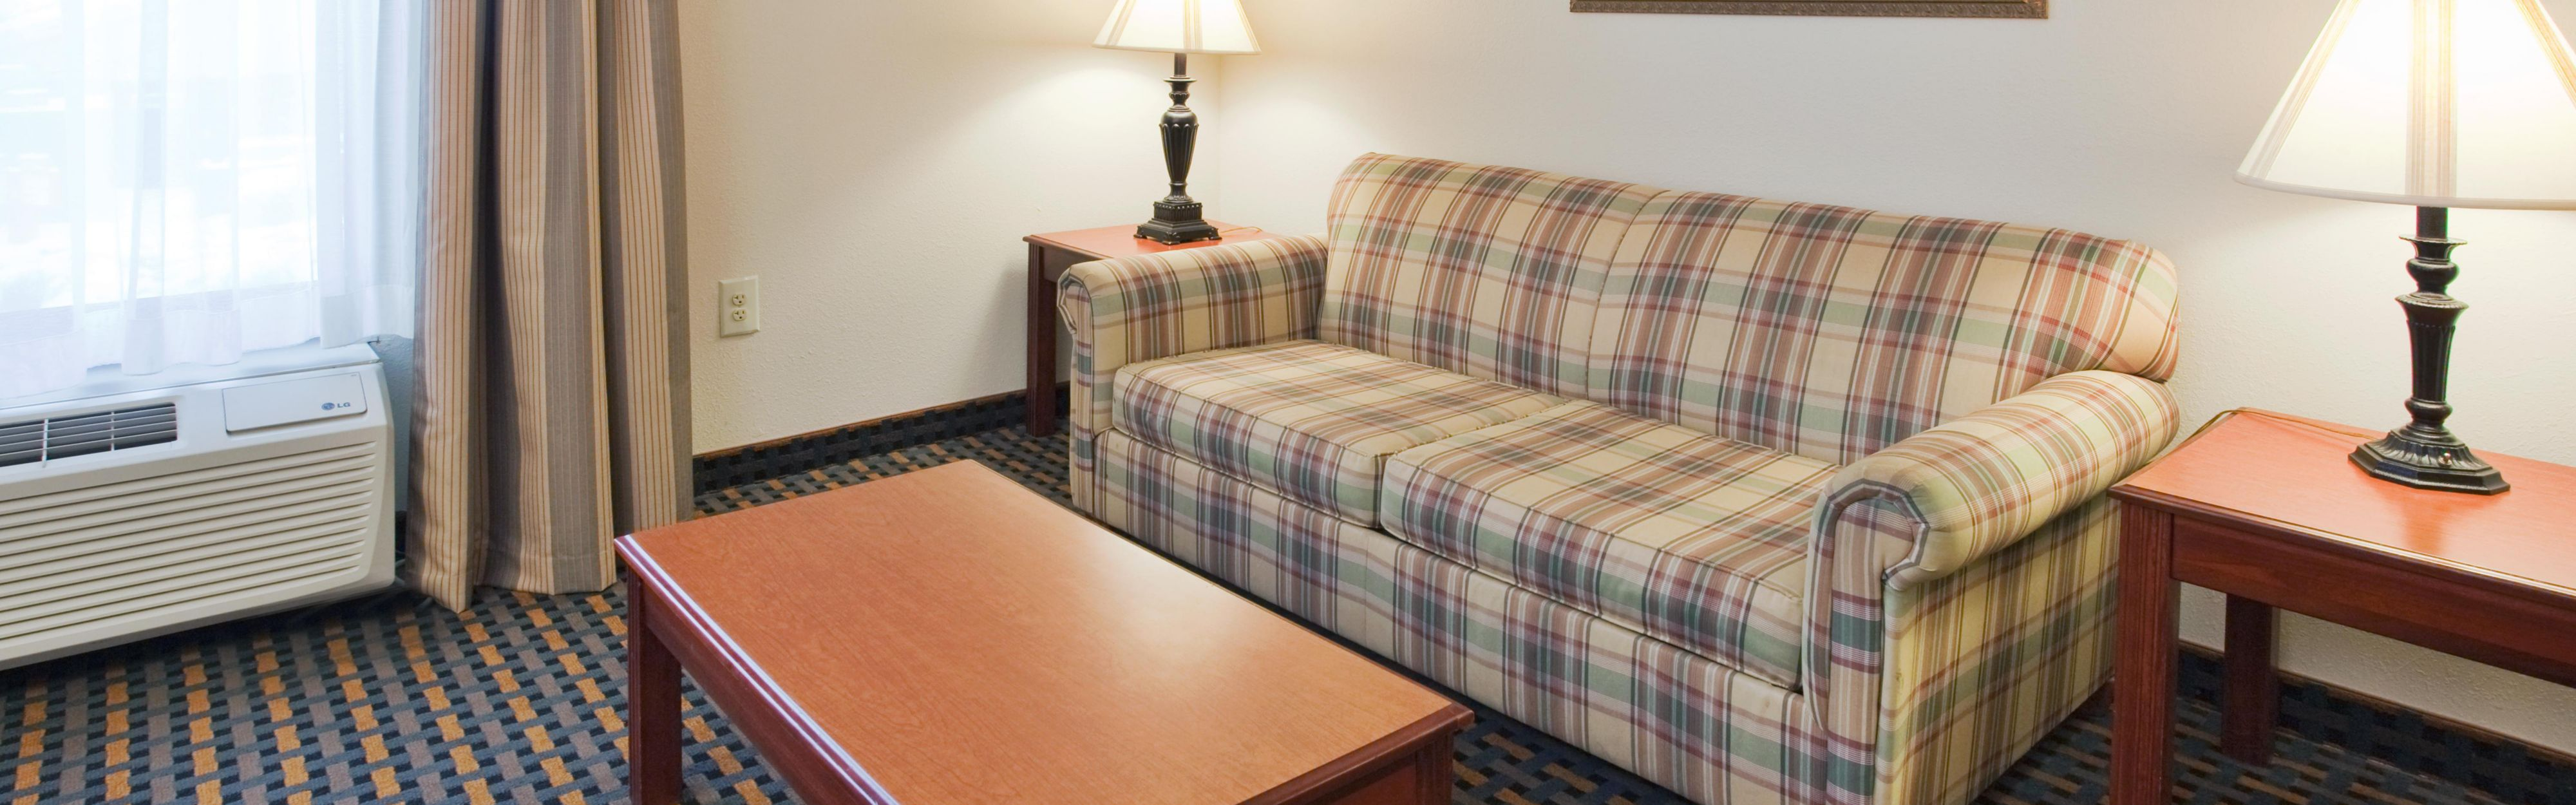 Holiday Inn Express & Suites Laurinburg image 1